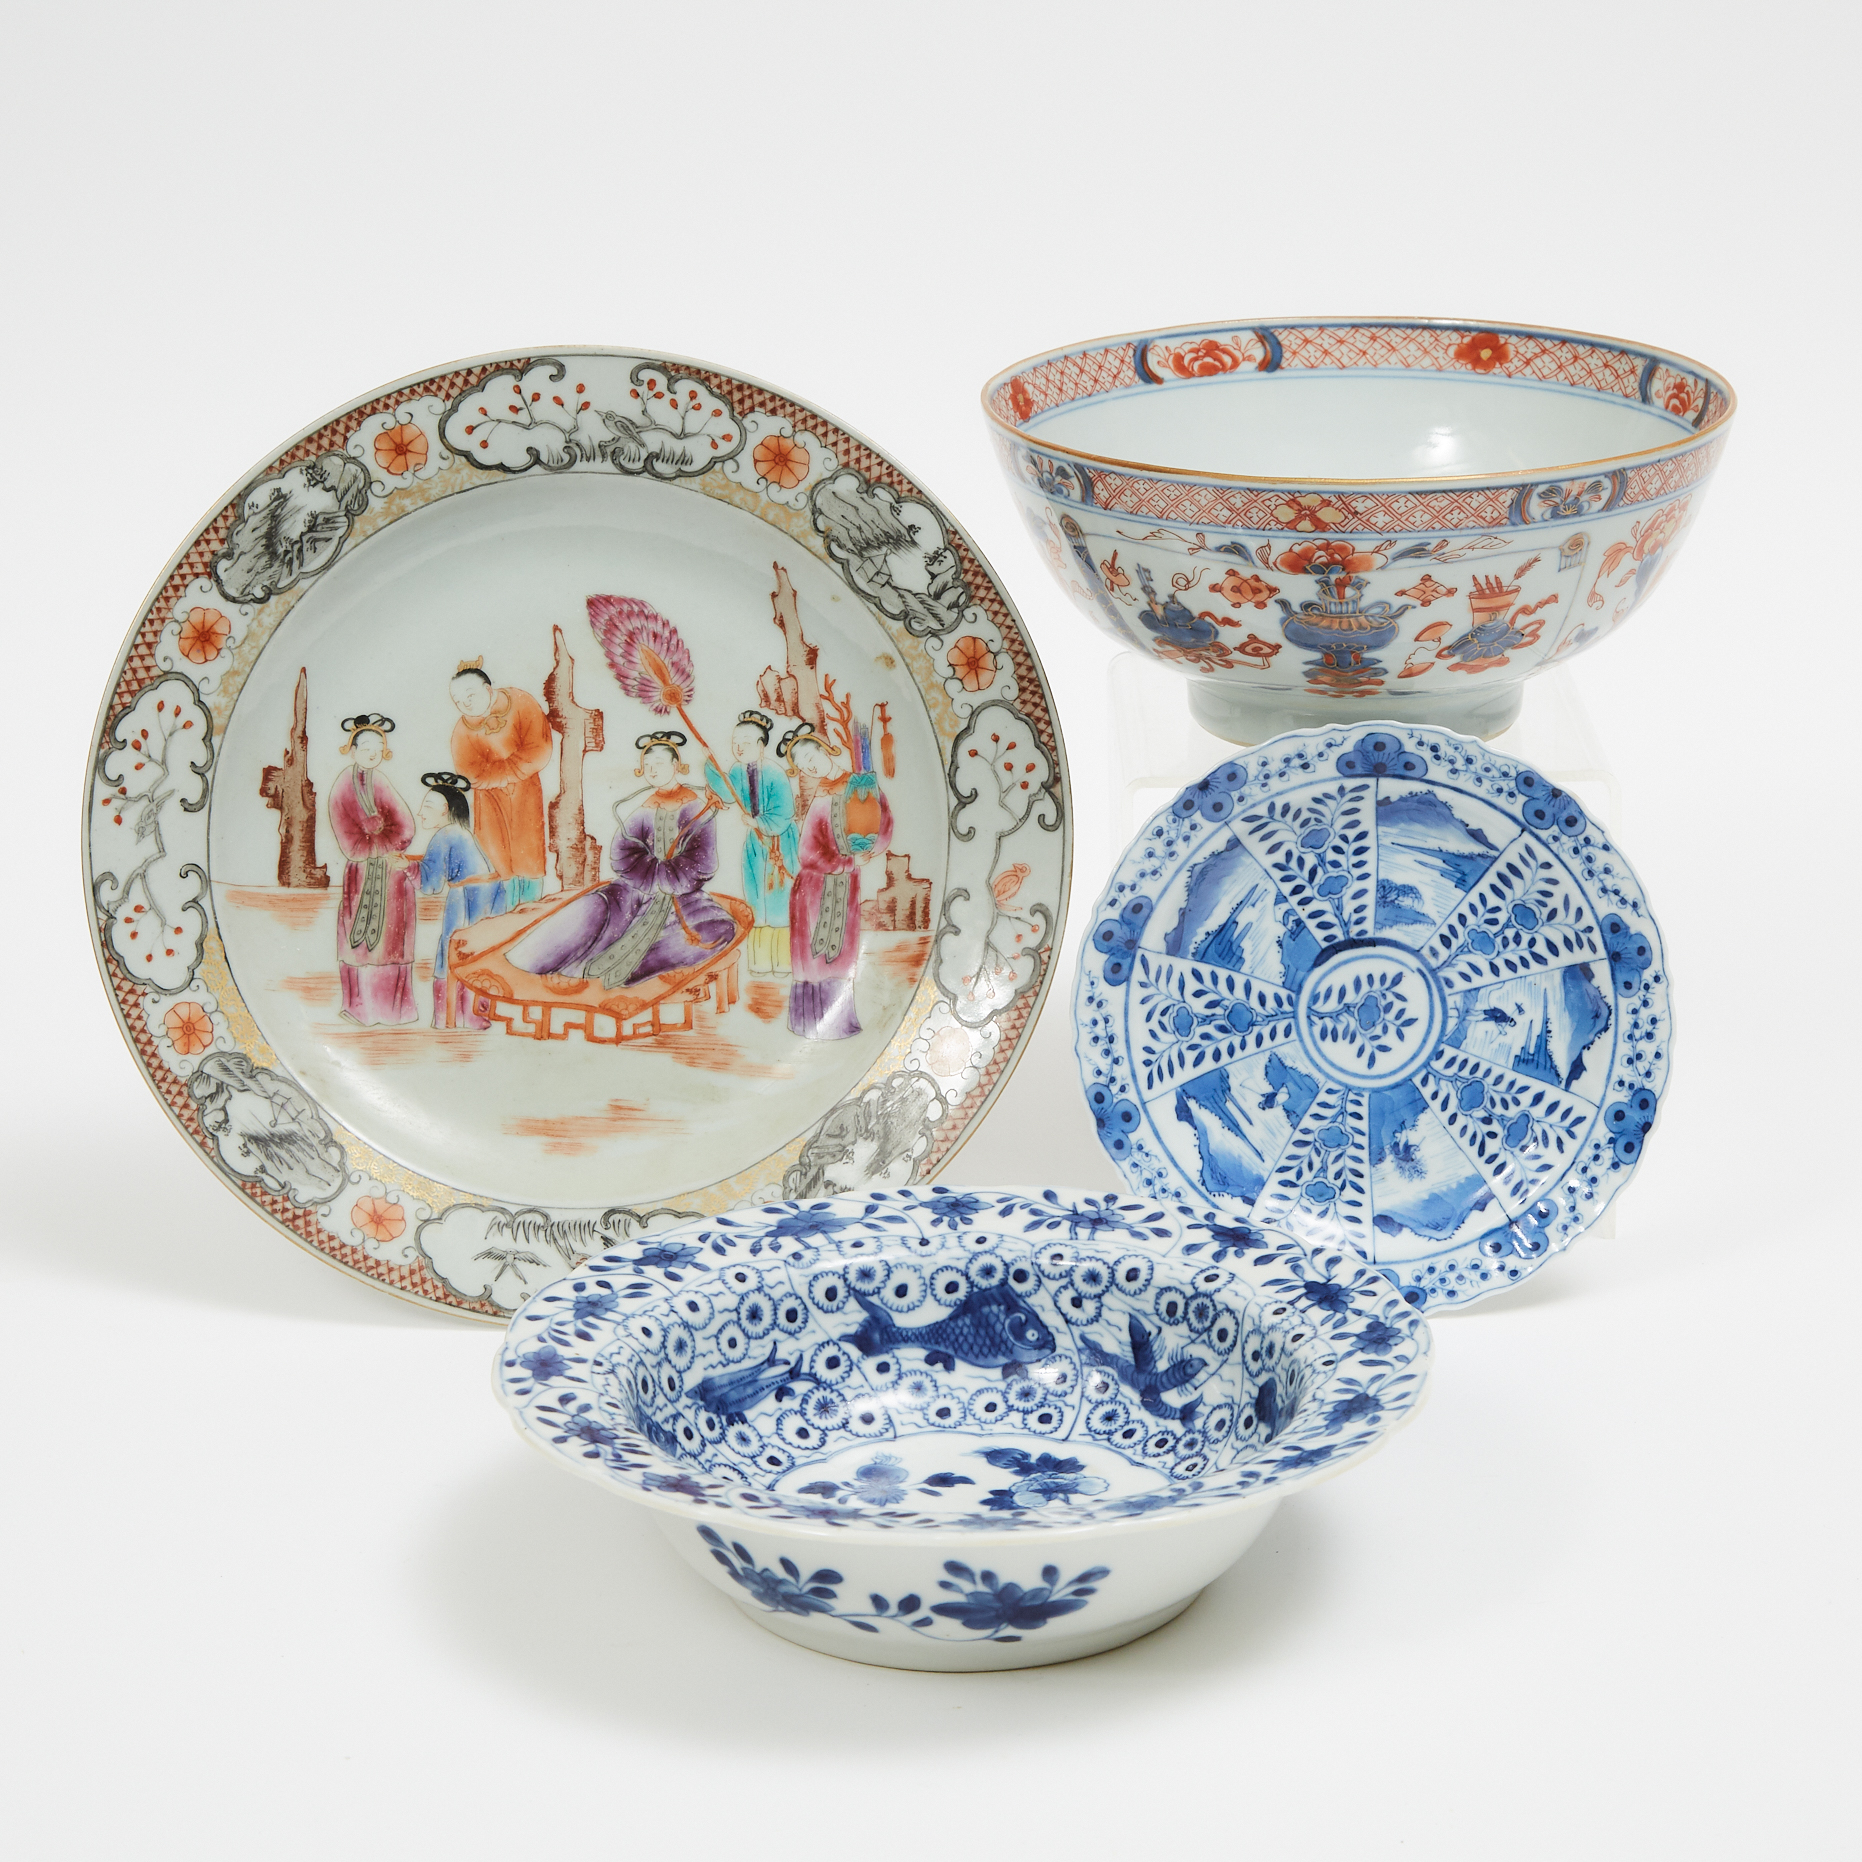 A Group of Four Chinese Export Porcelain Wares, Qing Dynasty